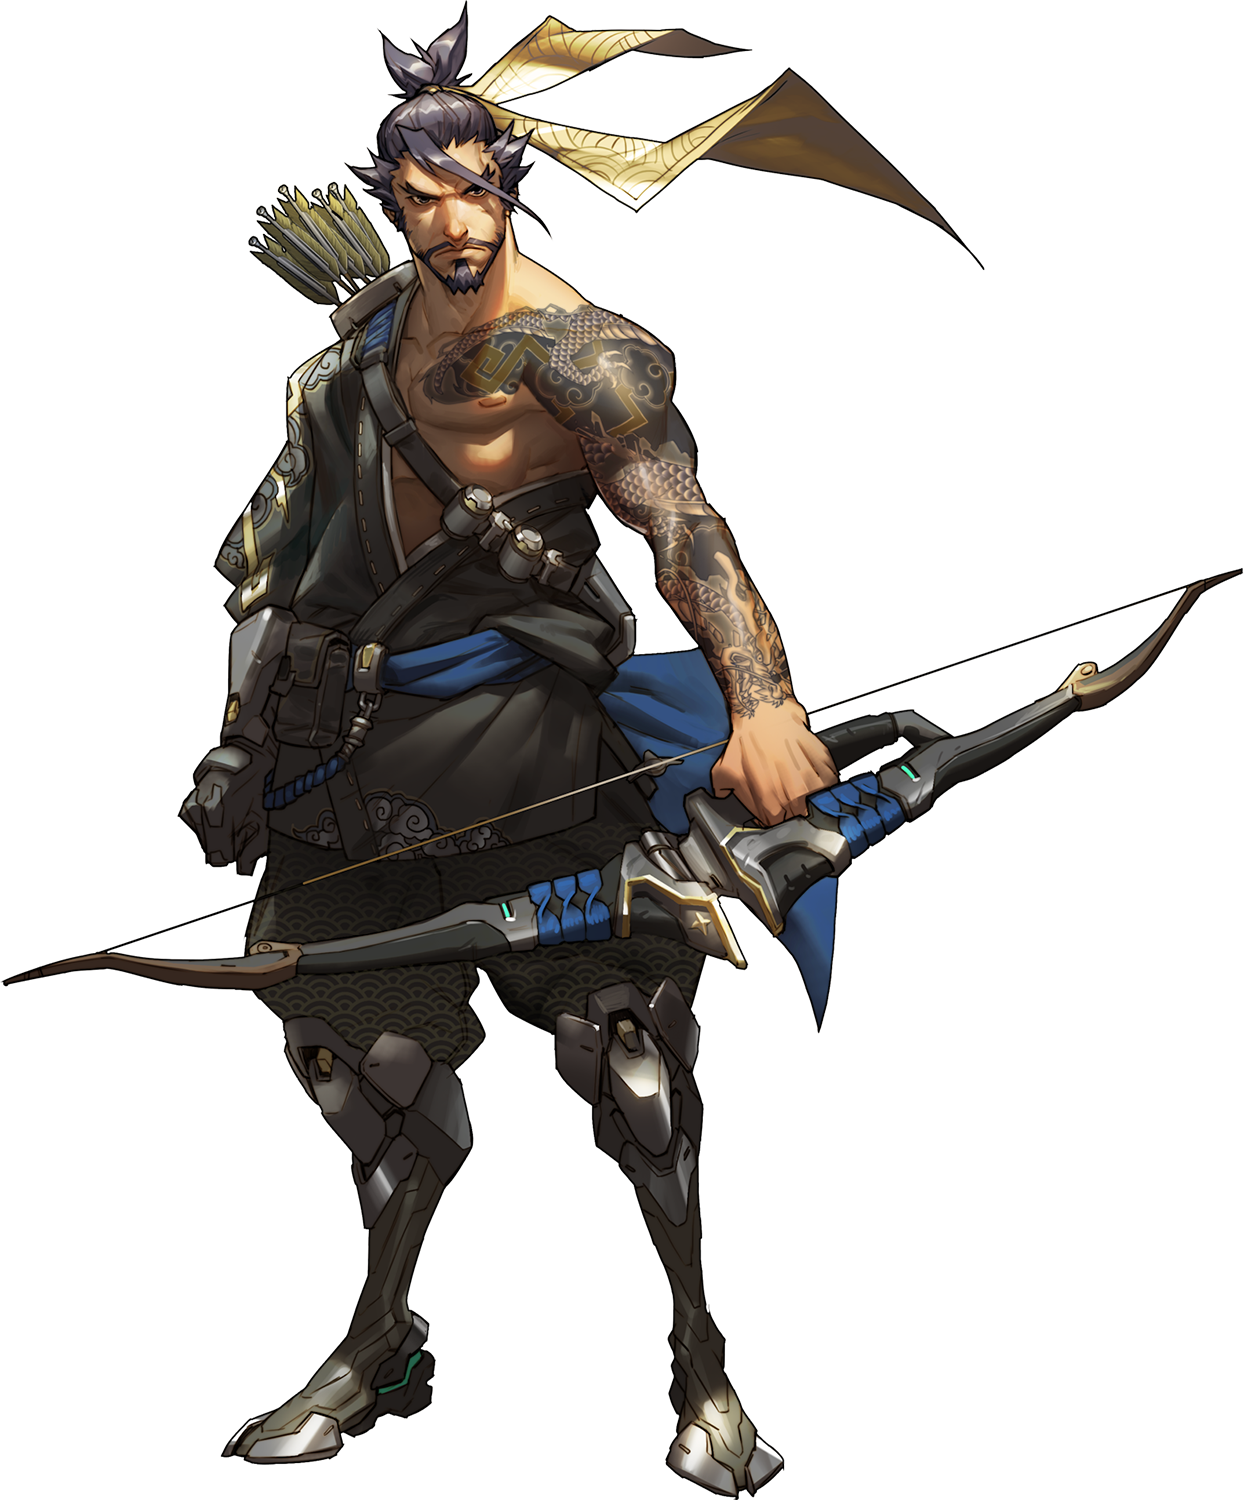 Hanzo Overwatch Wiki Hanzo (ranged assassin) patch note history for heroes of the storm (hots). hanzo overwatch wiki